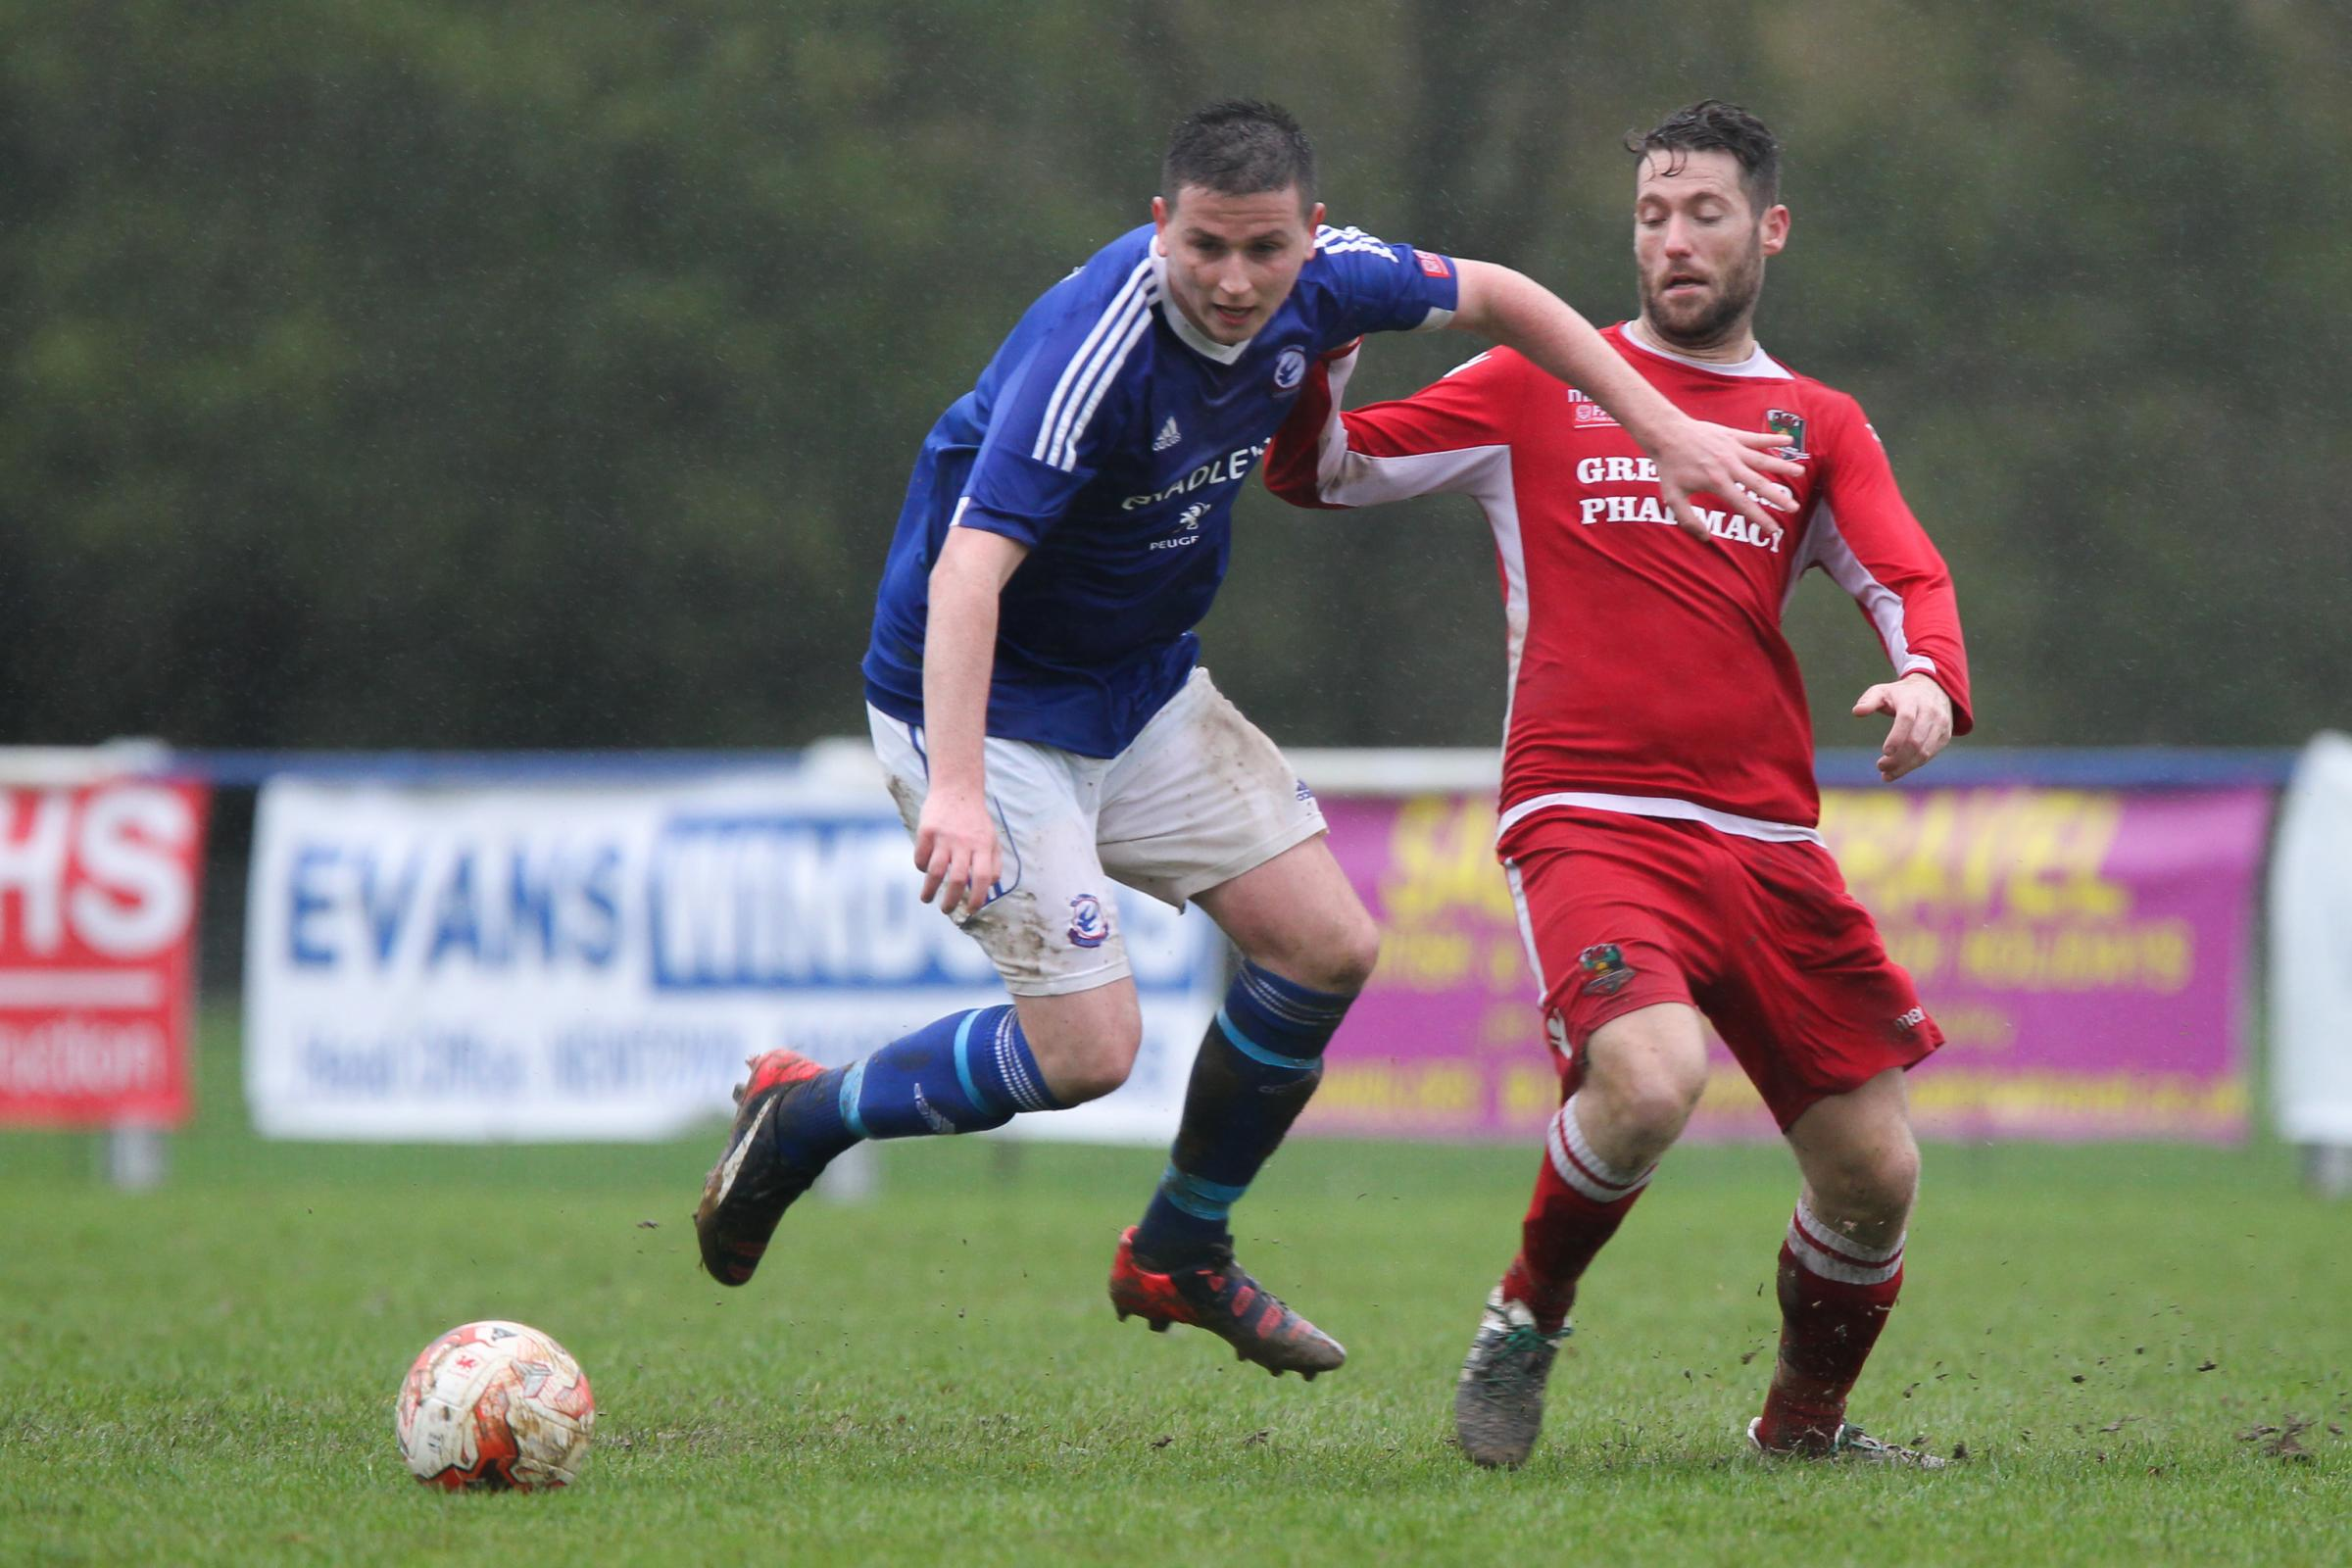 Rhydian Davies battles for the ball during the Huws Gray League Cup match between Caersws FC and Gresford Athletic at the Recreation ground on Saturday, October 21, 2017.Pic: Mike Sheridan/County TimesMS754-2017